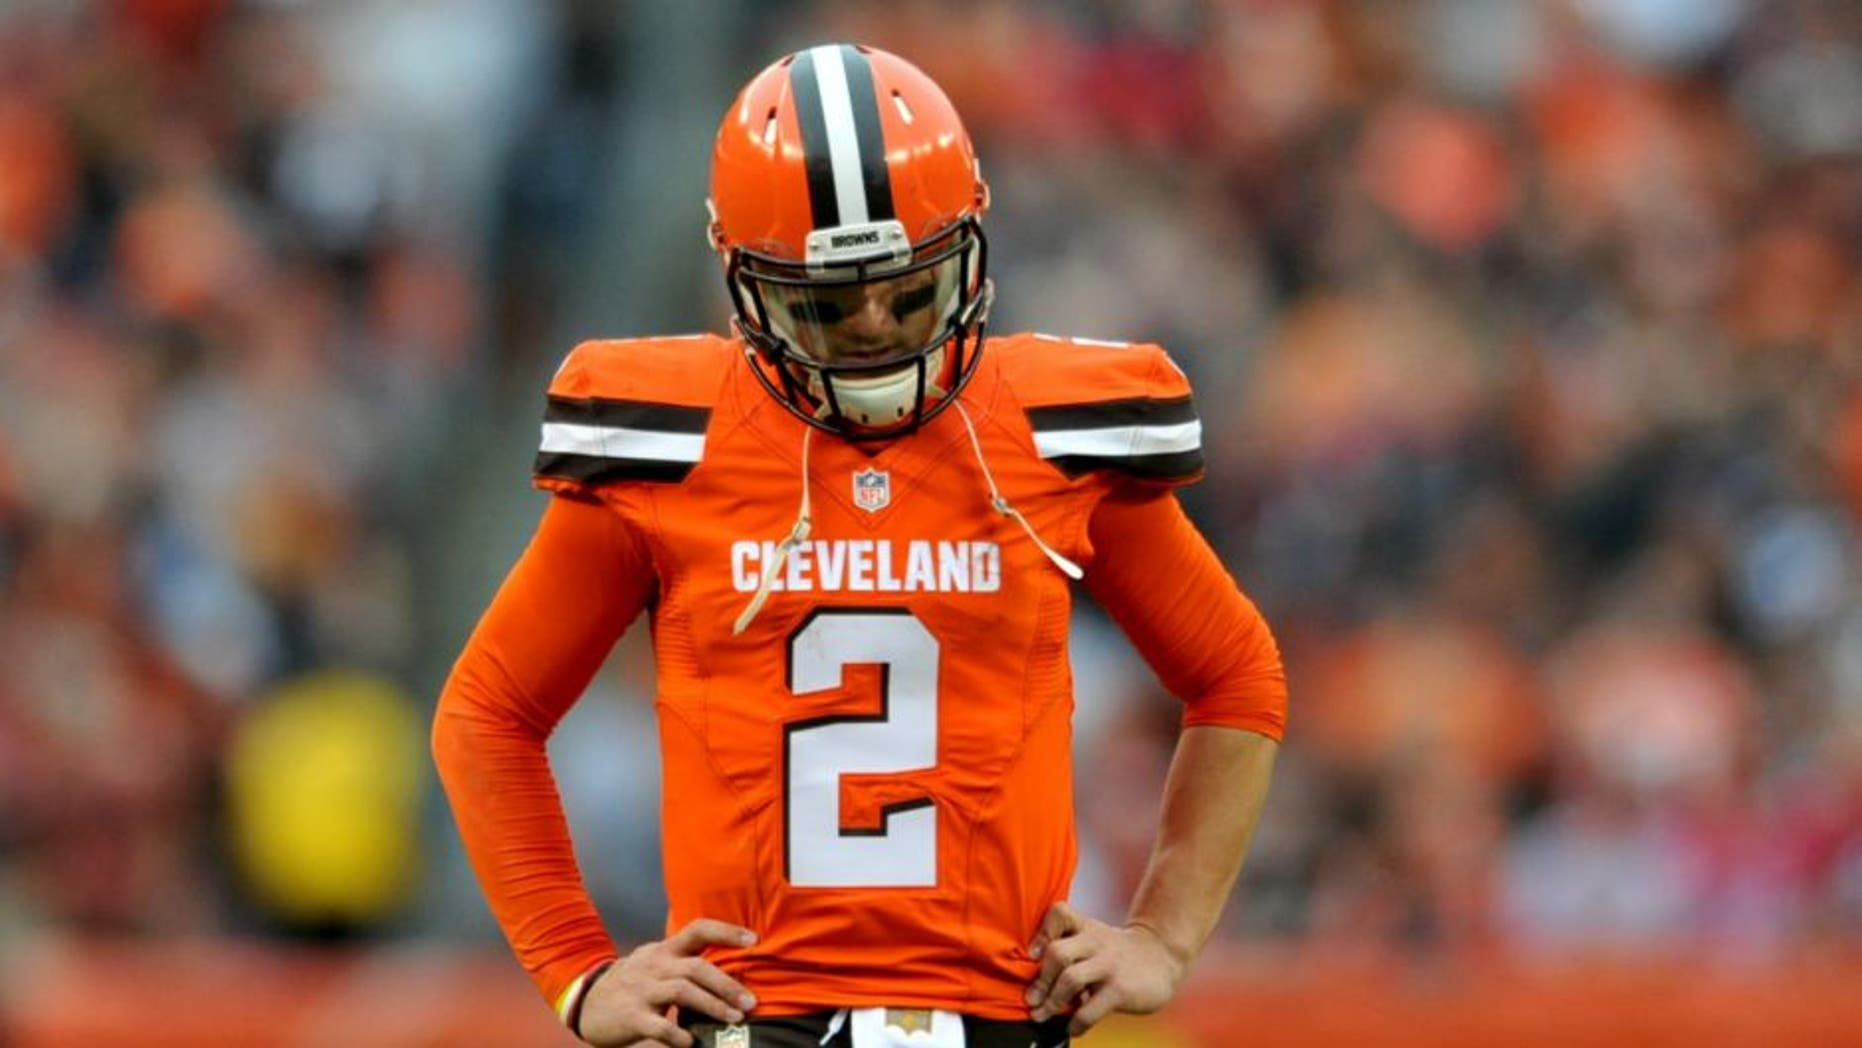 CLEVELAND, OH - DECEMBER 13, 2015: Quarterback Johnny Manziel #2 of the Cleveland Browns stands on the field during a game against the San Francisco 49ers on December 13, 2015 at FirstEnergy Stadium in Cleveland, Ohio. Cleveland won 24-10. (Photo by Nick Cammett/Diamond Images/Getty Images) *** Local Caption *** Johnny Manziel,CLEVELAND, OH - DECEMBER 13, 2015: Quarterback Johnny Manziel #2 of the Cleveland Browns stands on the field during a game against the San Francisco 49ers on December 13, 2015 at FirstEnergy Stadium in Cleveland, Ohio. Cleveland won 24-10. (Photo by Nick Cammett/Diamond Images/Getty Images)